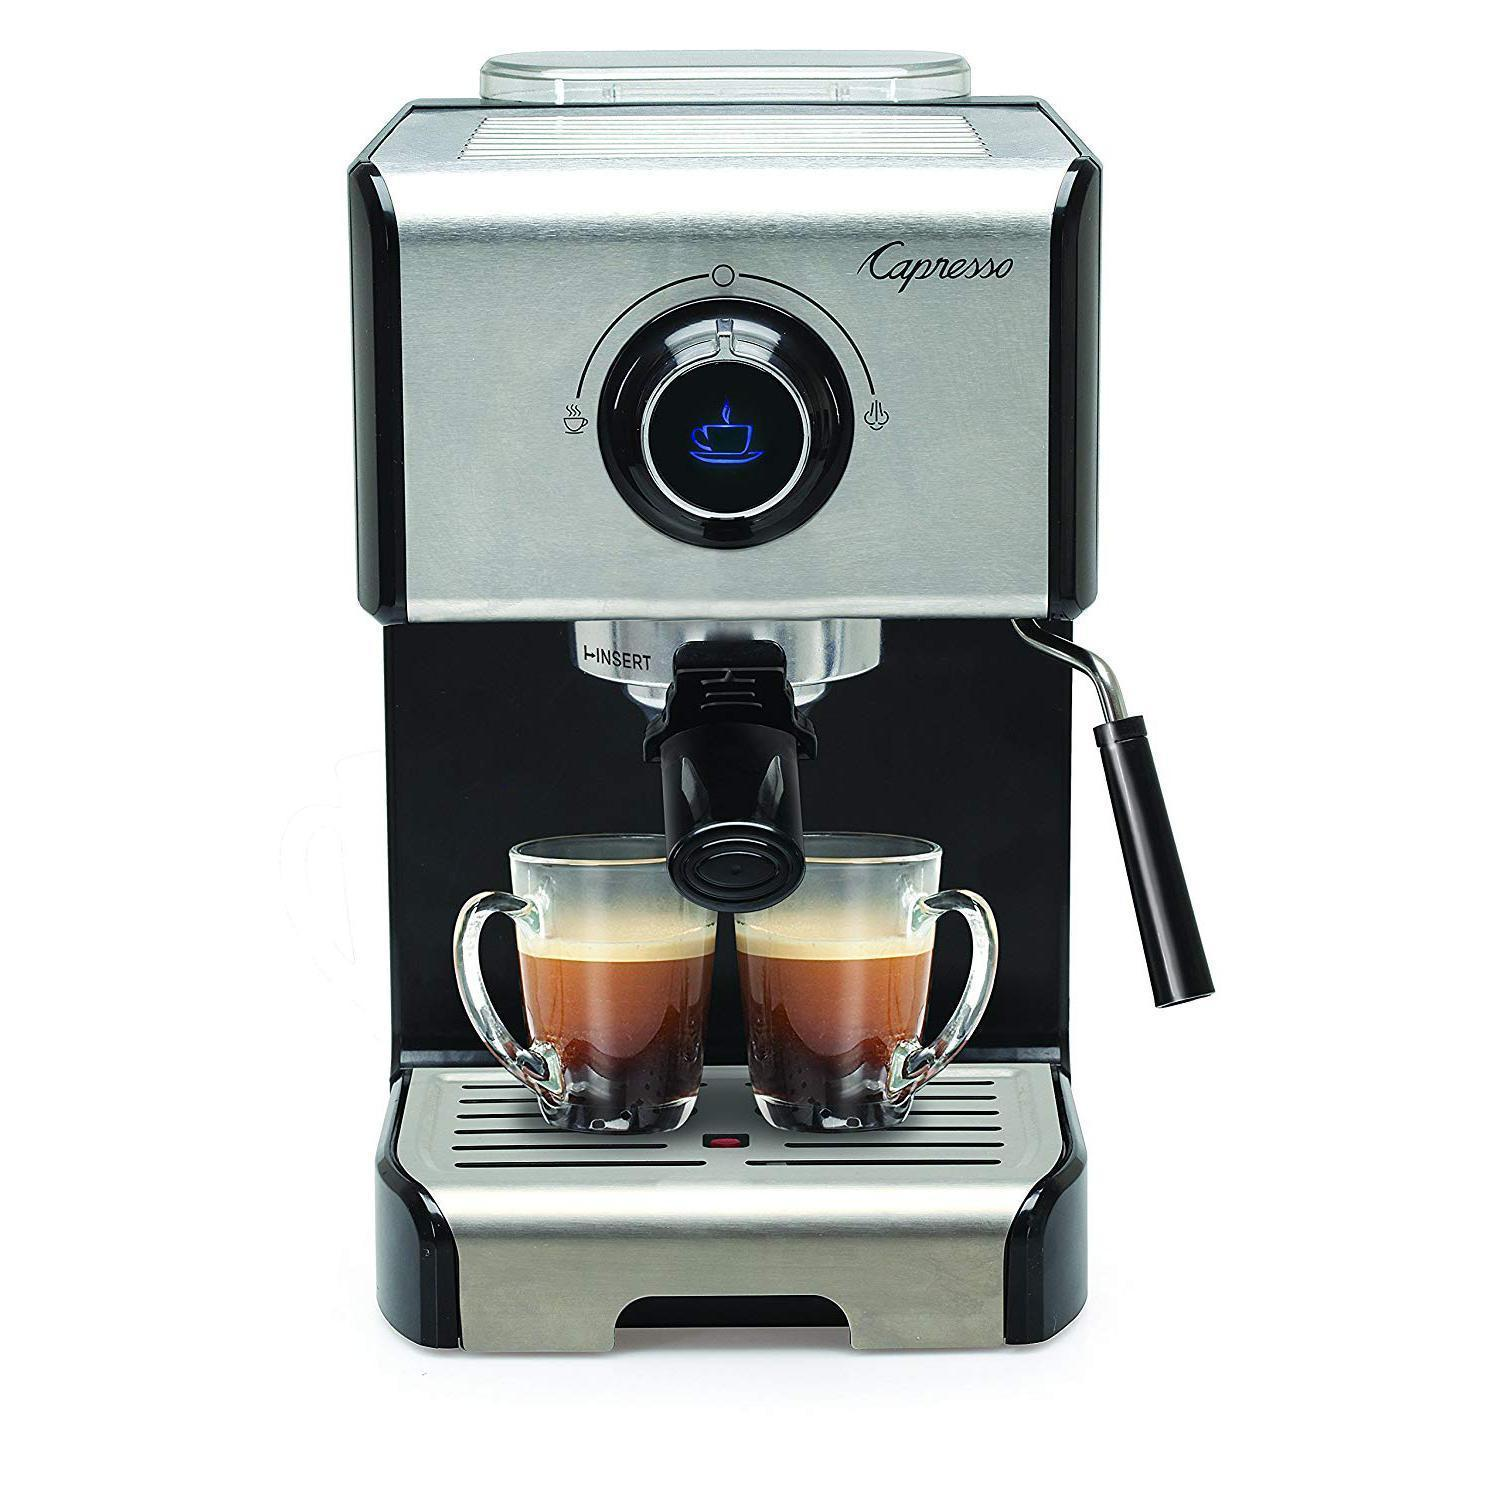 A used coffee machine from Back Market